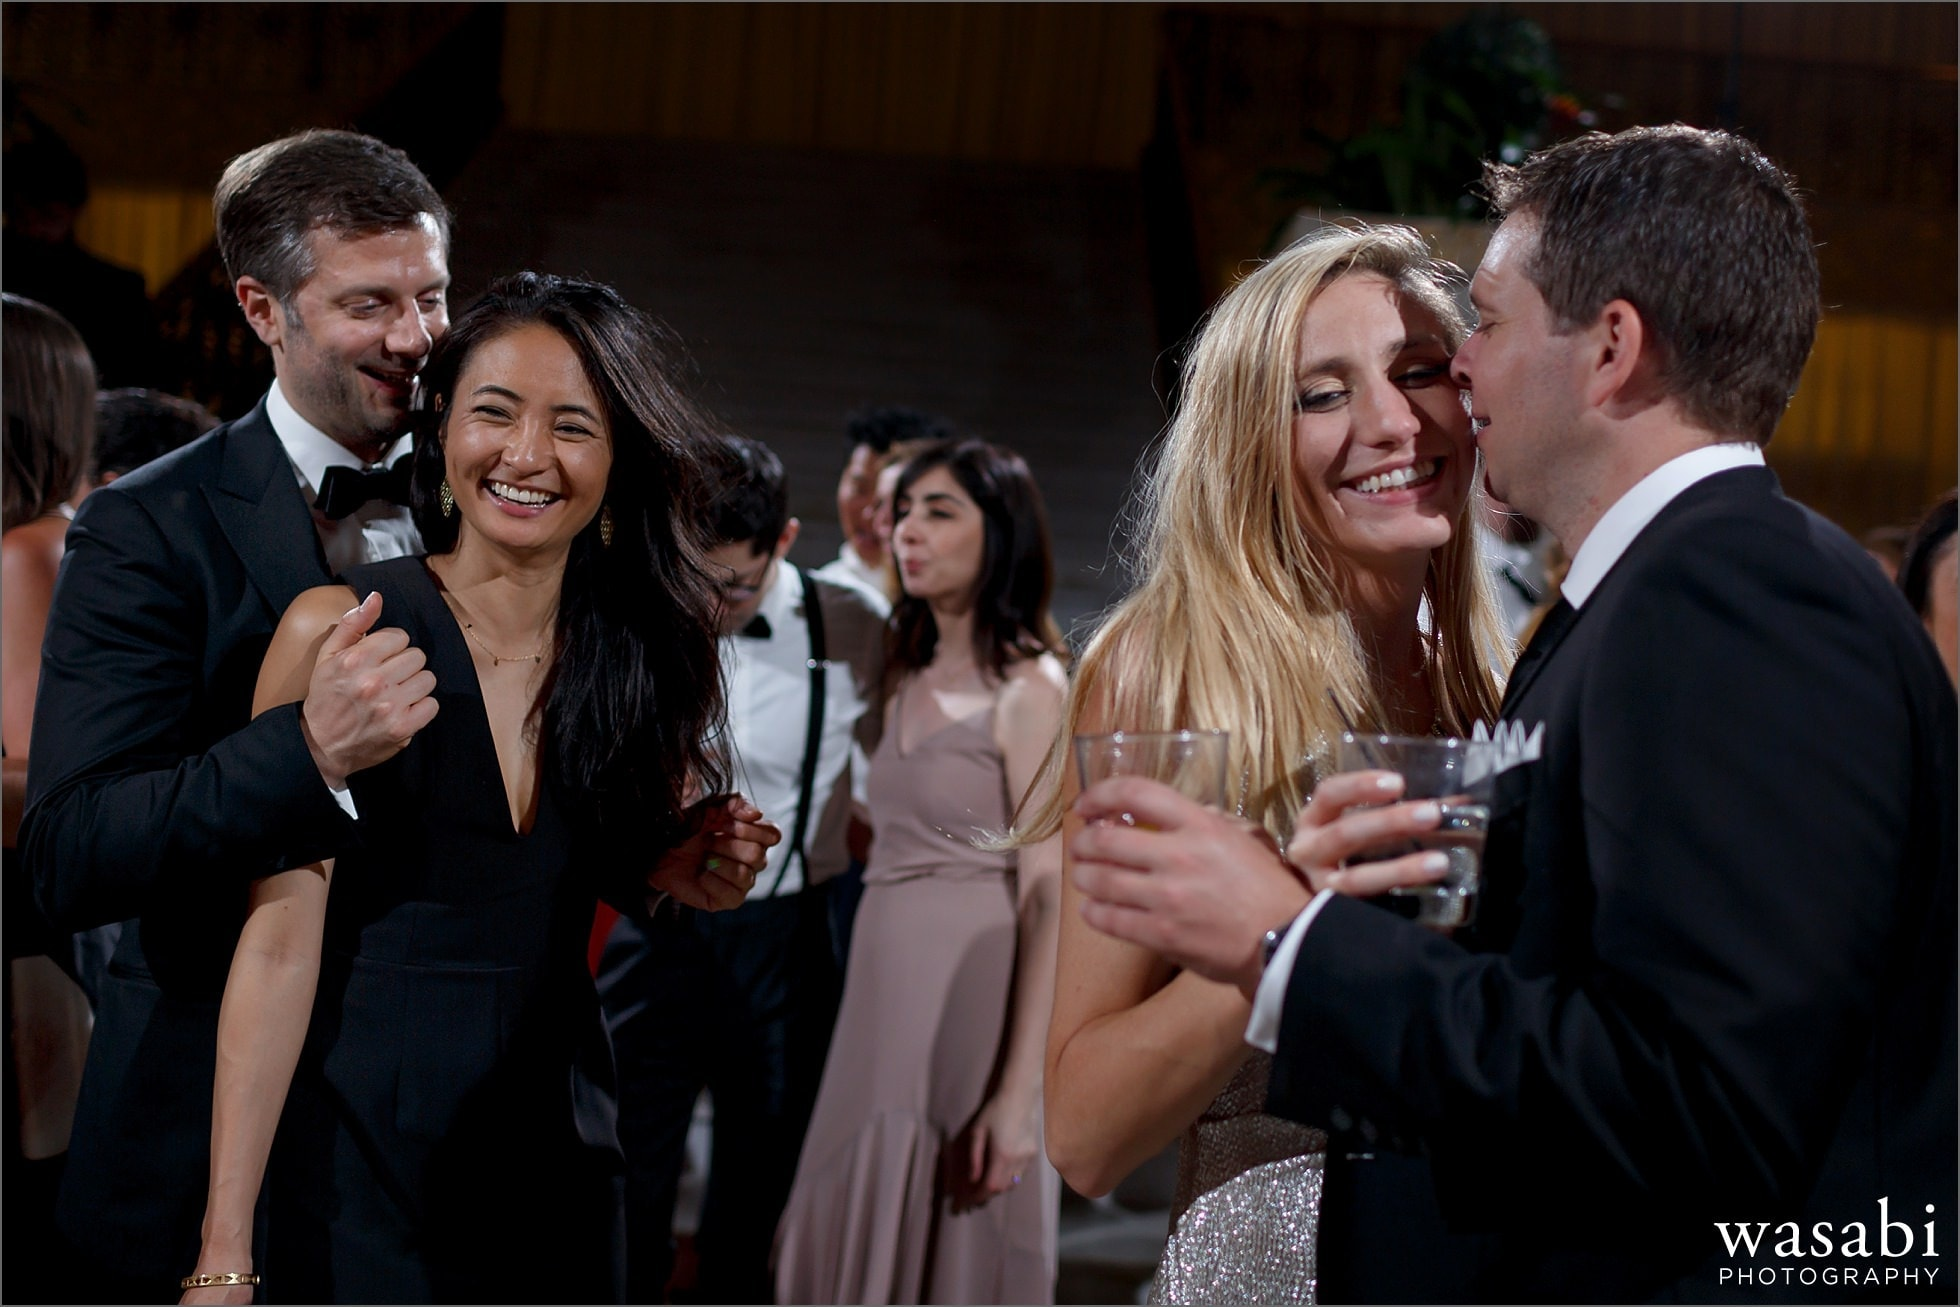 couples dancing during reception photos at The Rookery Building in Chicago